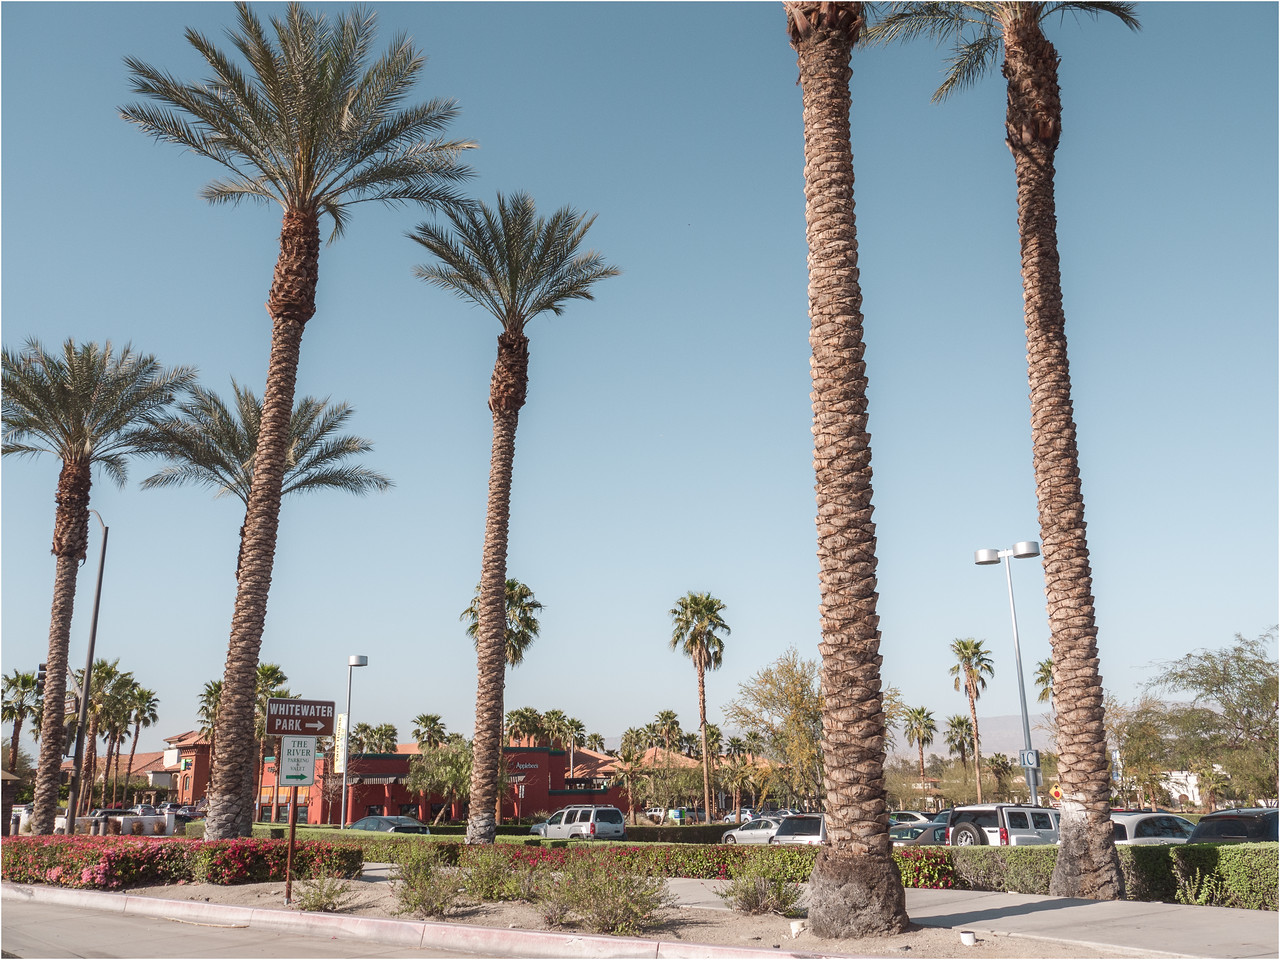 Miles and miles of malls , which look better with Palm trees!